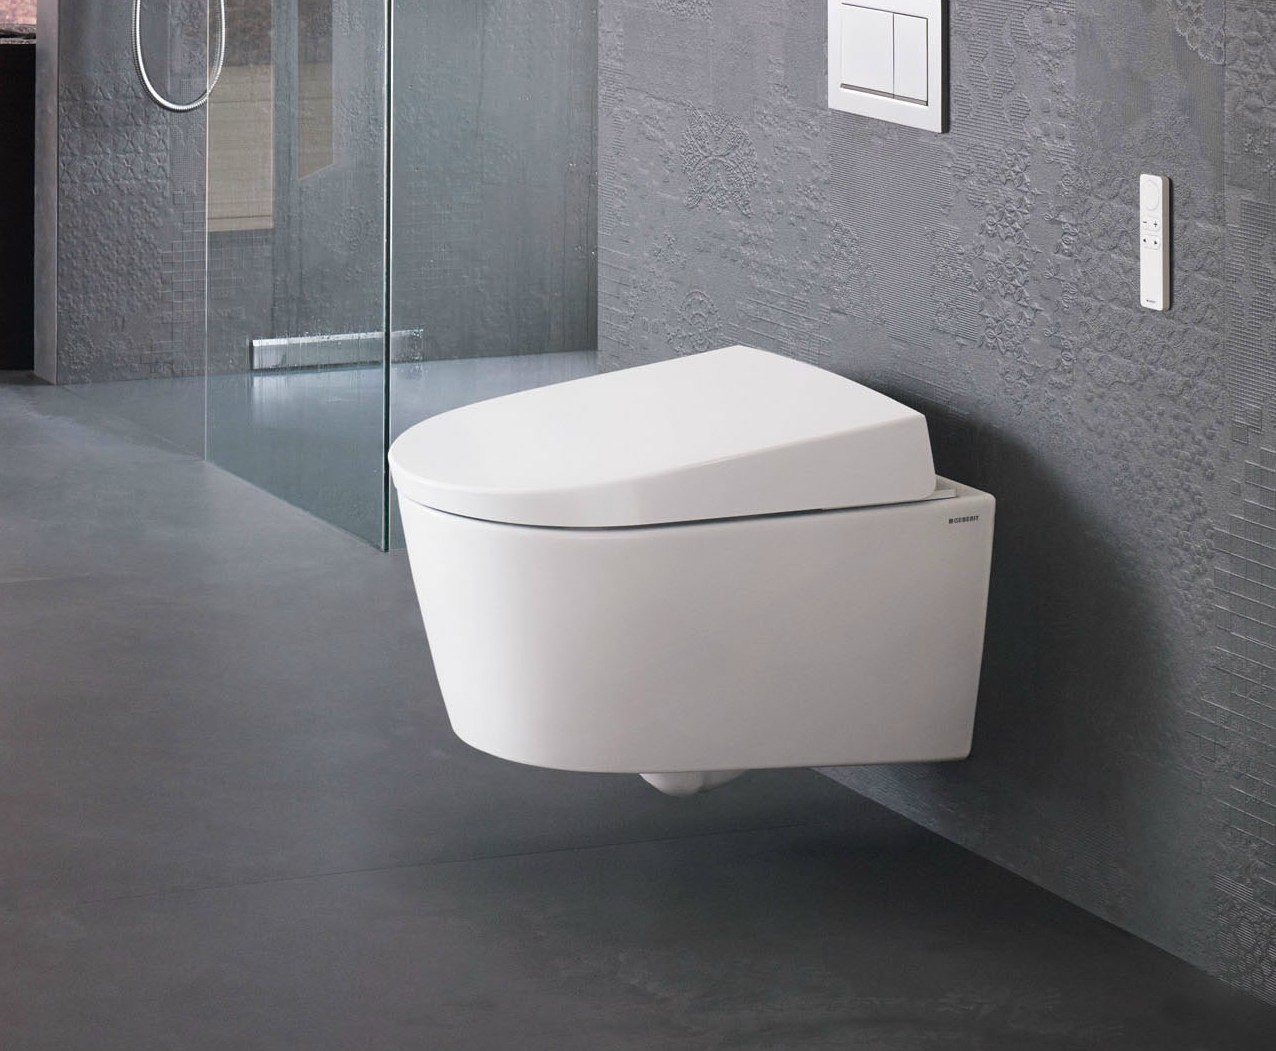 wc bidet sospeso aquaclean sela by geberit italia design matteo thun. Black Bedroom Furniture Sets. Home Design Ideas